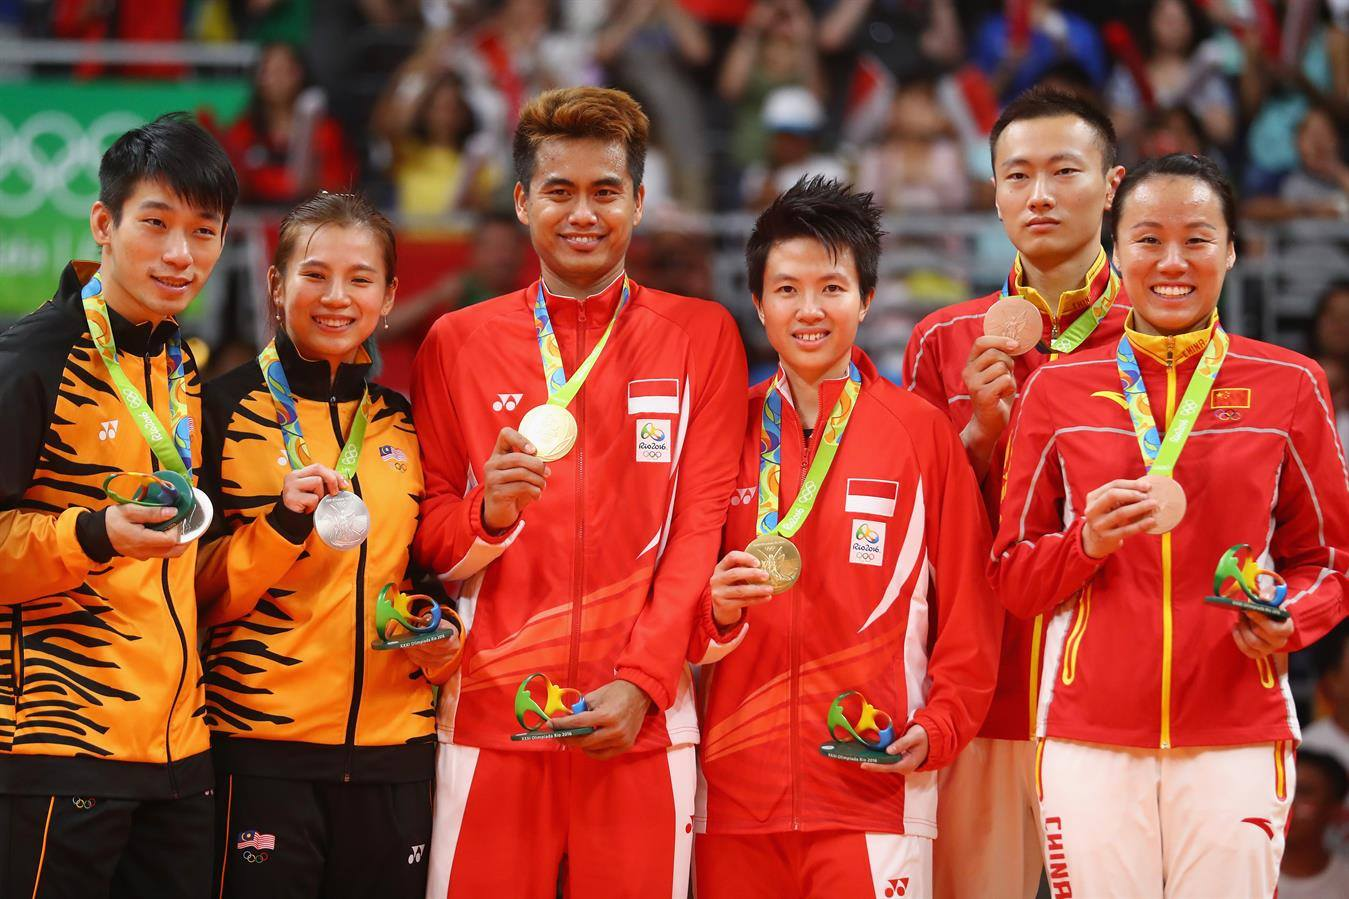 Mixed Doubles Tontowi and Liliyana Present Gold on Independence